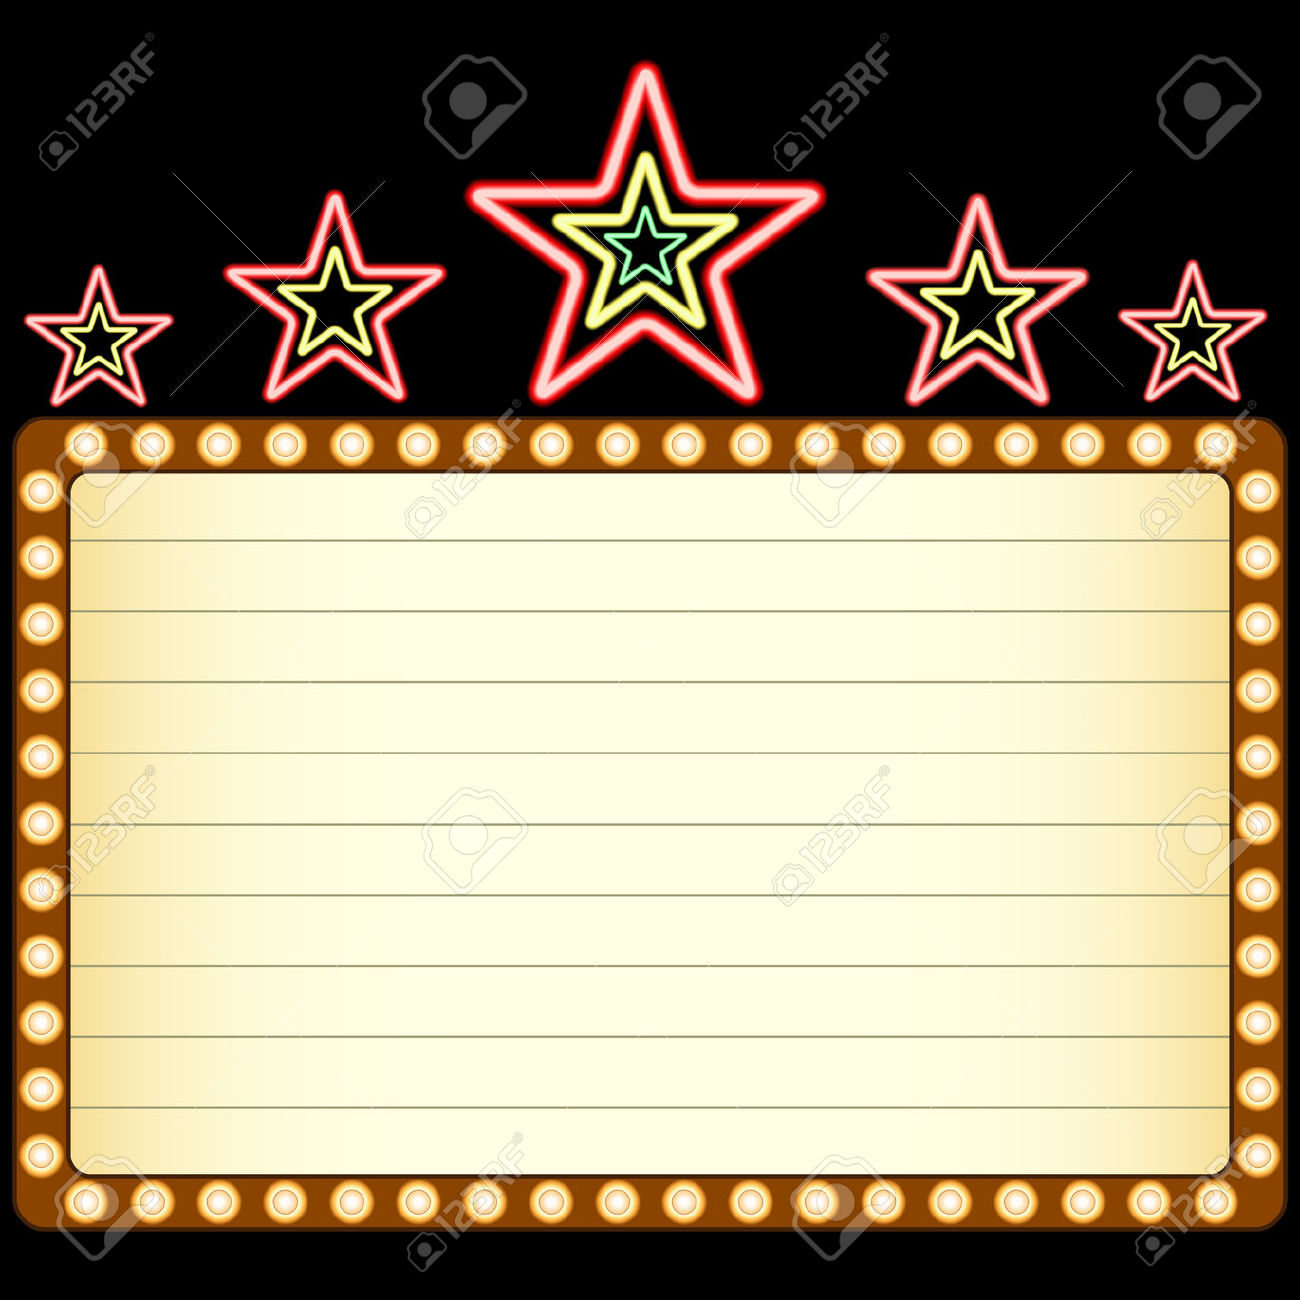 hight resolution of 1300x1300 movie clipart blank movie marquee